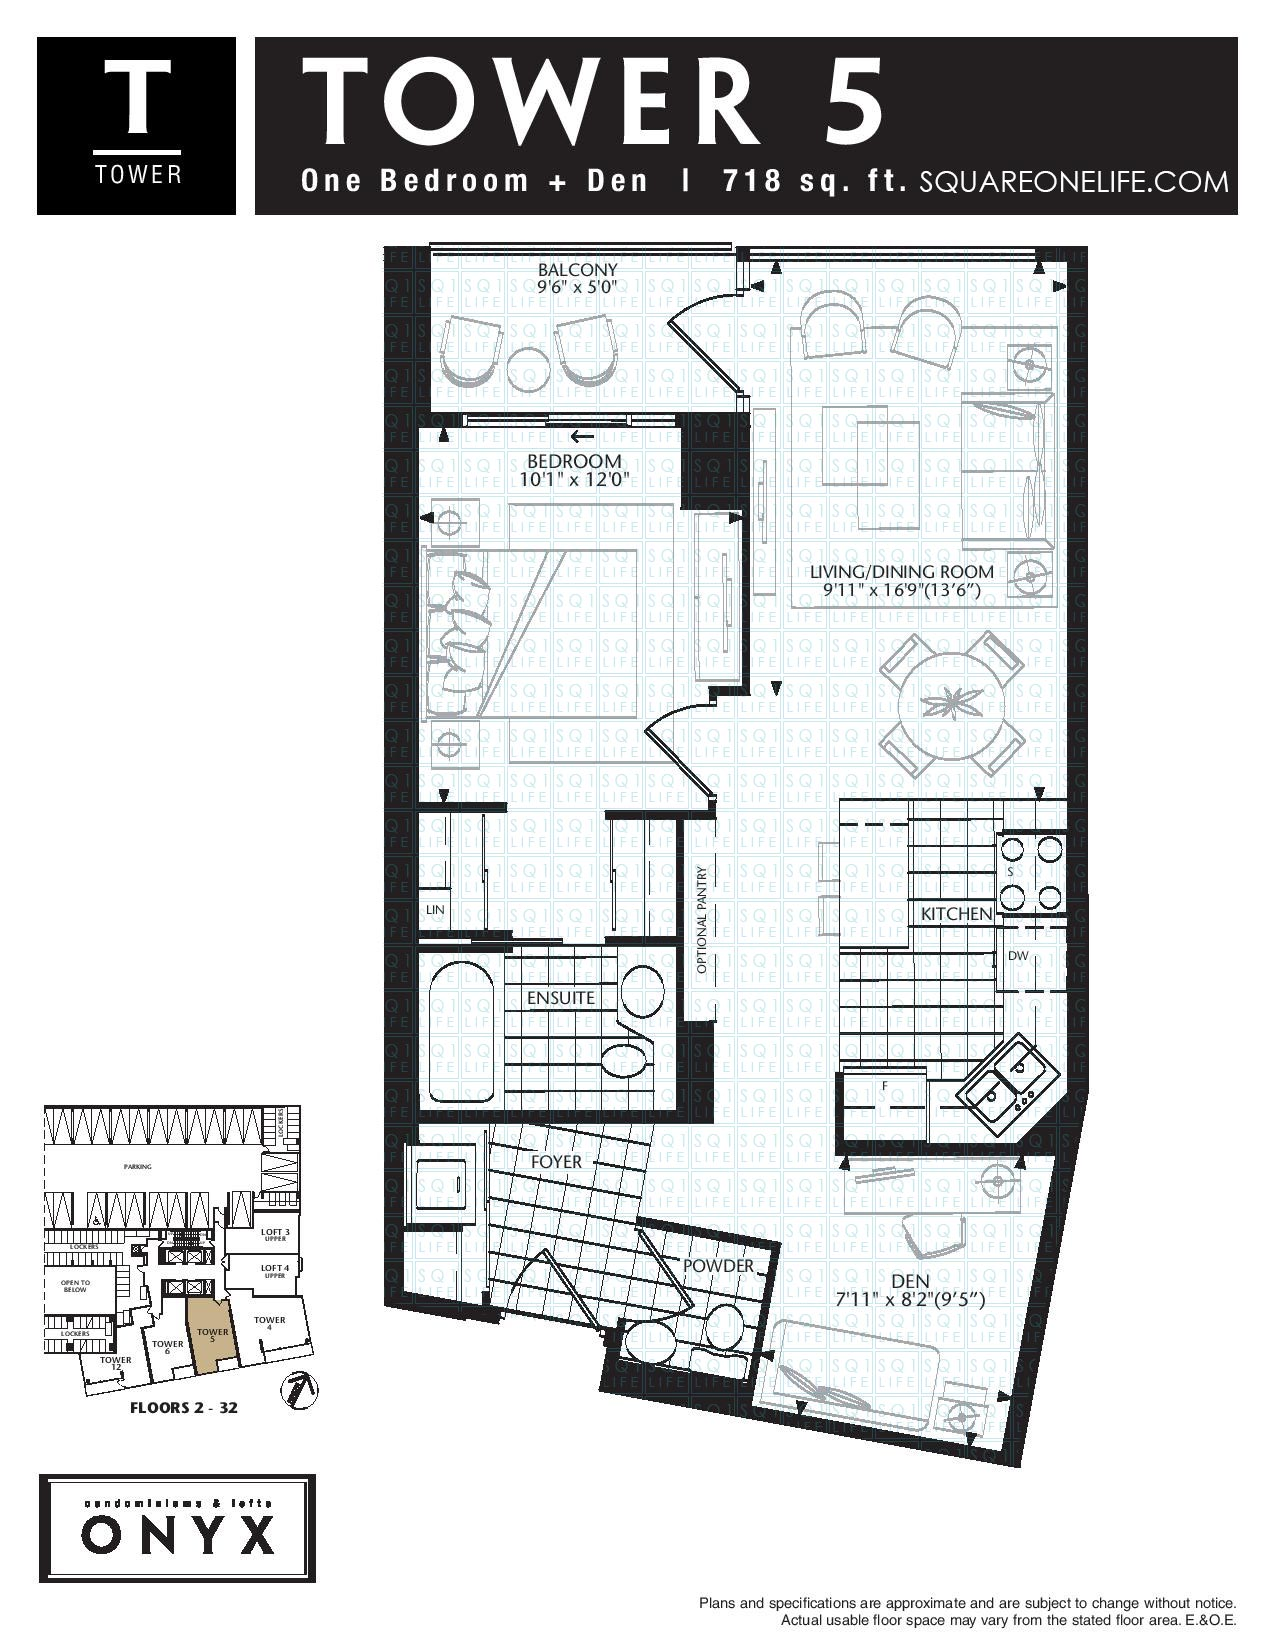 223-Webb-Dr-Onyx-Condo-Floorplan-Tower-5-1-Bed-1-Den-2-Bath onyx condo Onyx Condo 223 Webb Dr Onyx Condo Floorplan Tower 5 1 Bed 1 Den 2 Bath